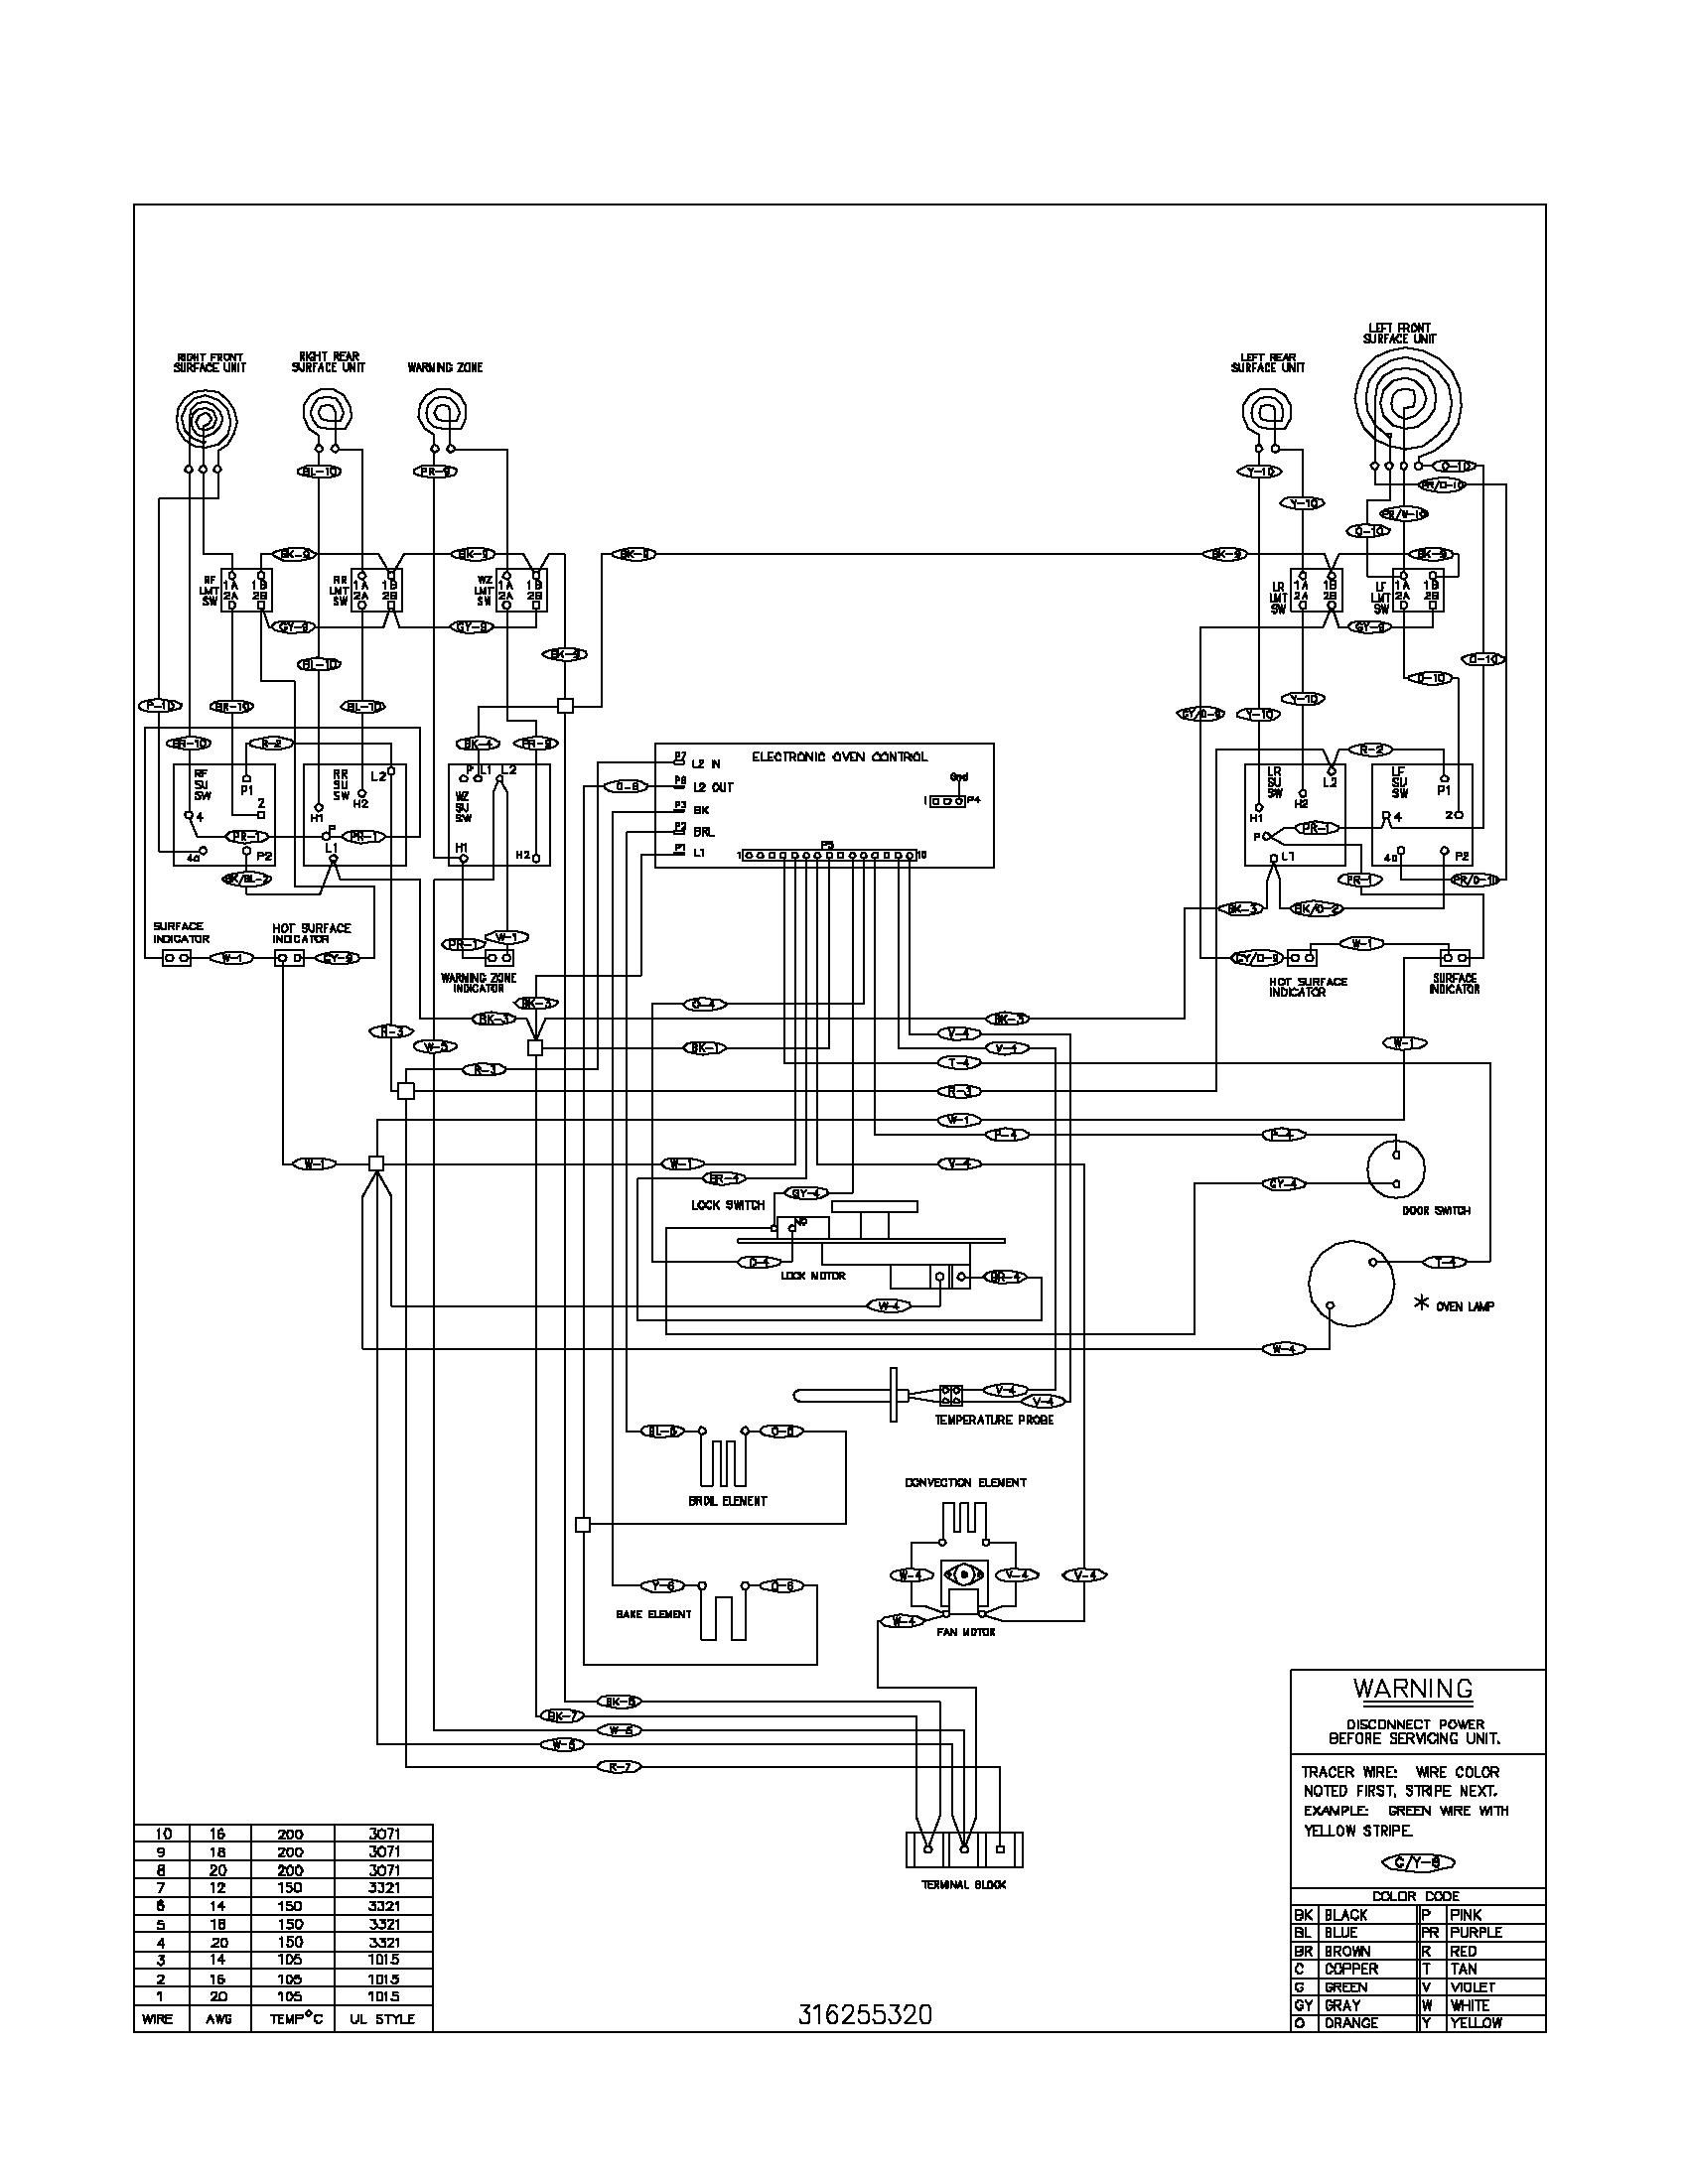 Electric Stove Schematic Wiring Diagram | Wiring Diagram - Electric Stove Wiring Diagram